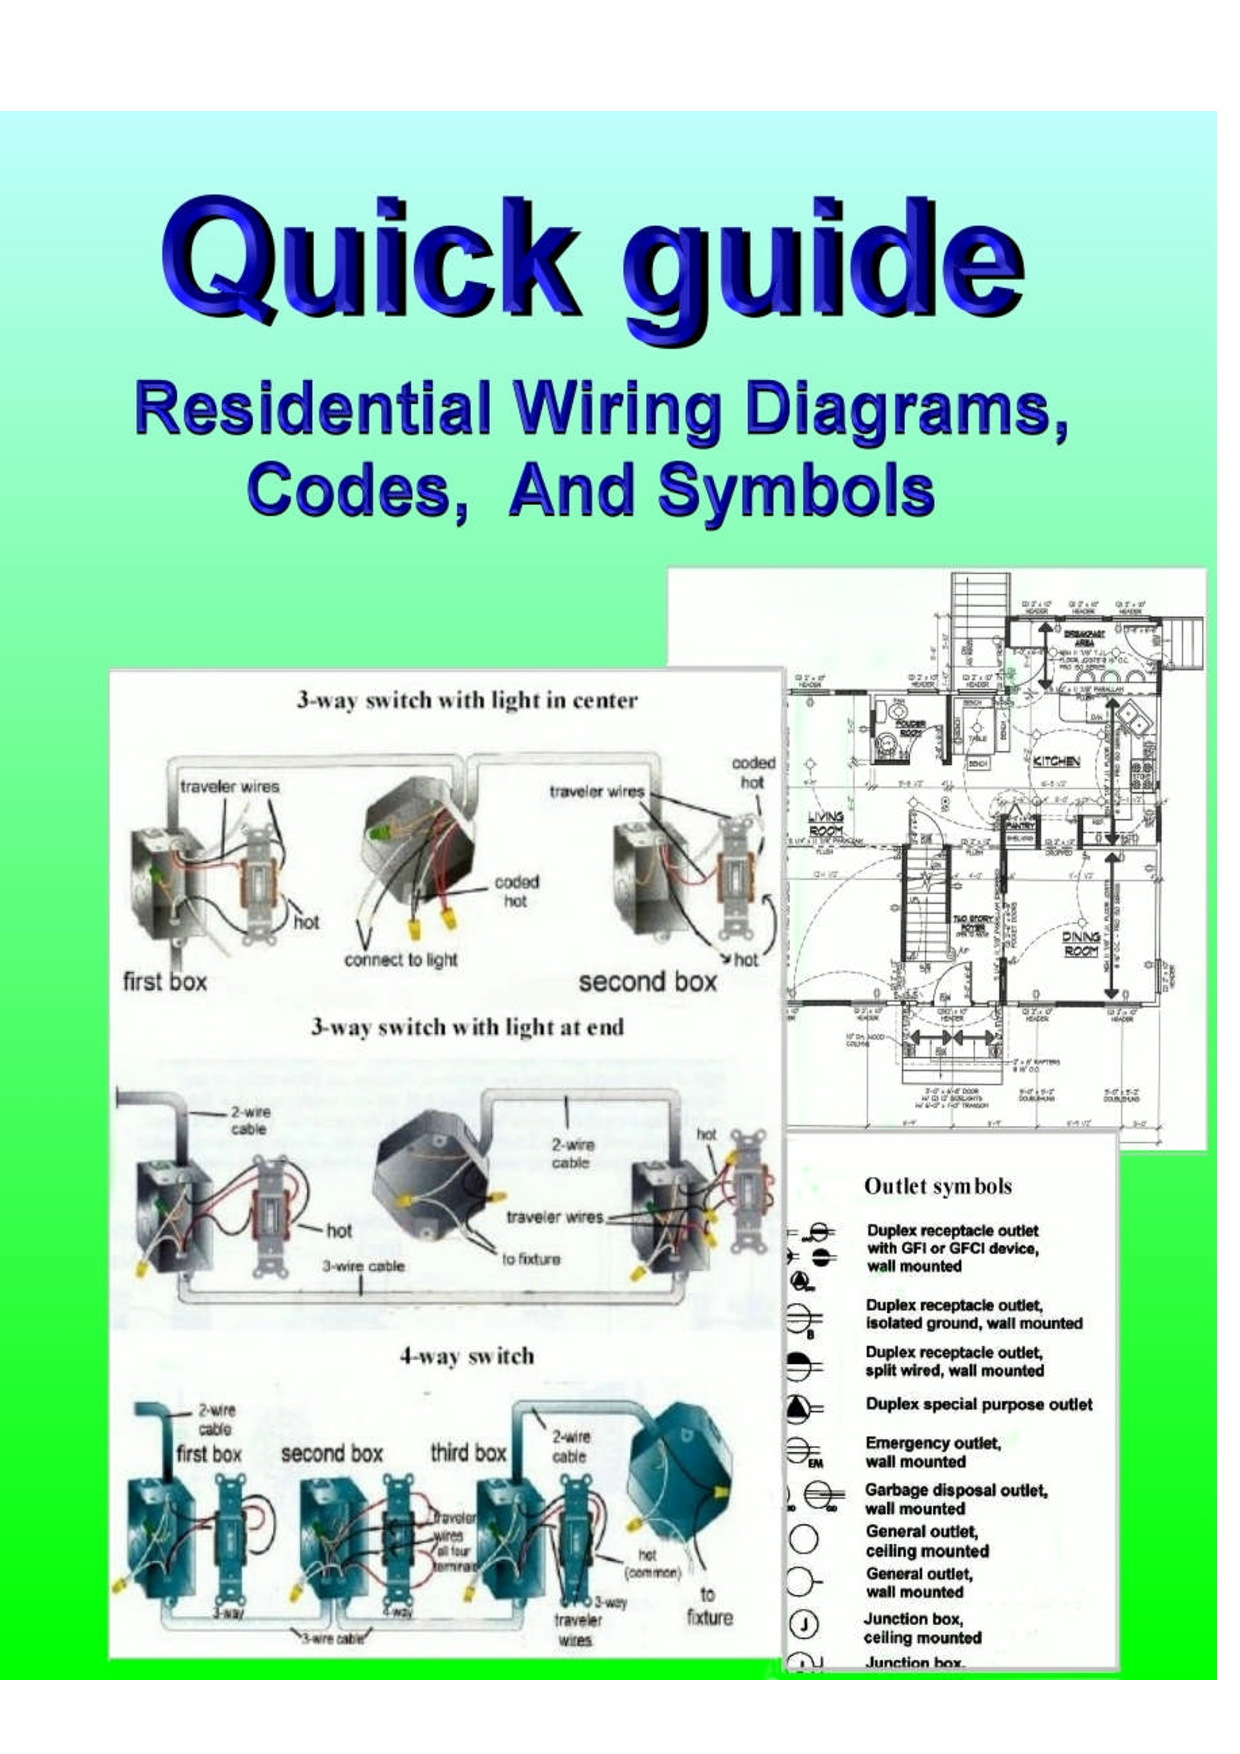 Home Electrical Wiring Diagramspdf Download Legal Documents 39 Understanding Diagrams Pdf Pages With Many And Illustrations A Step By Guide